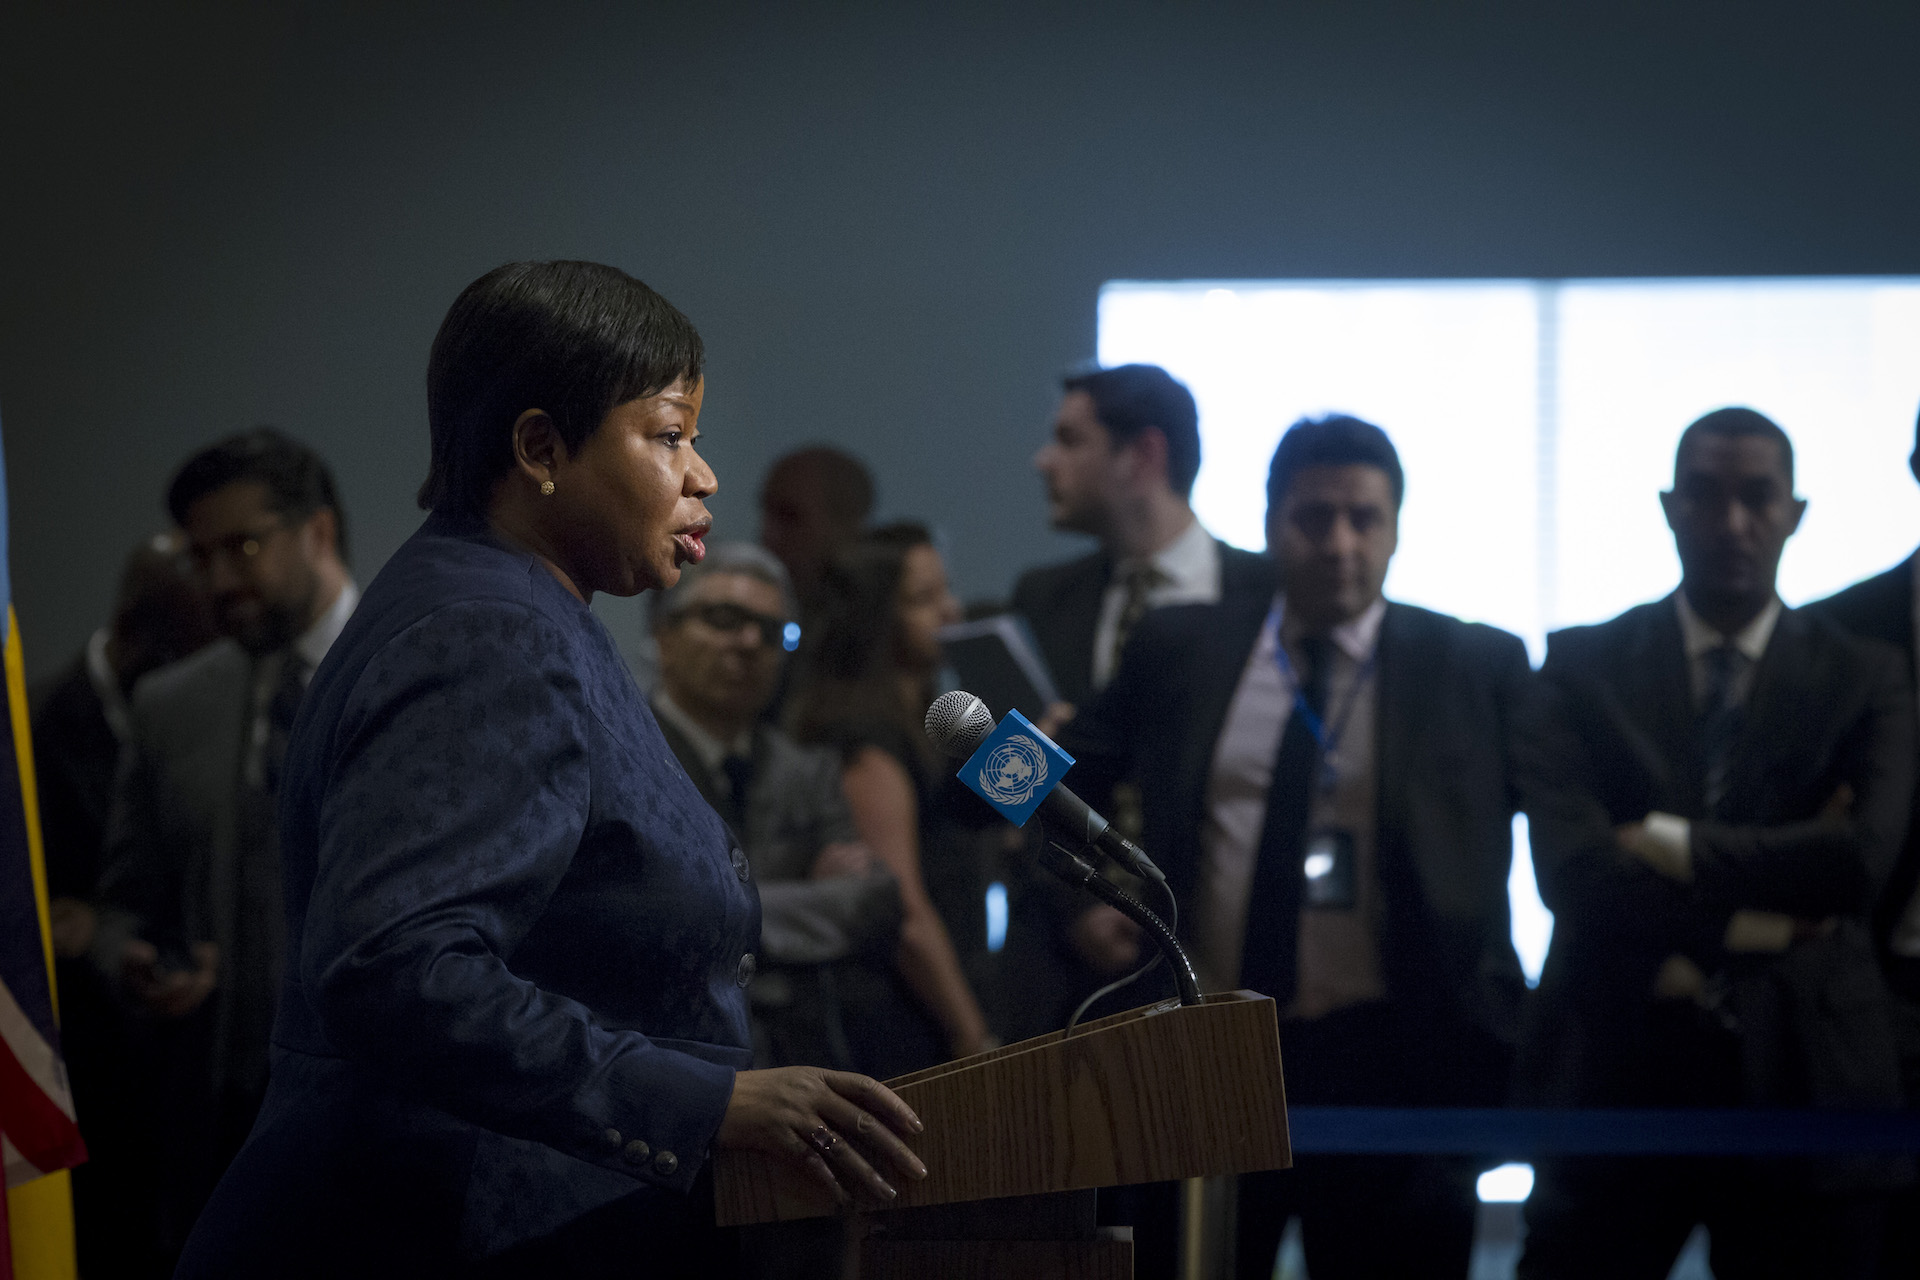 Fatou Bensouda, prosecutor of the International Criminal Court, speaks to journalists after a briefing at the UN Security Council in May 2016.